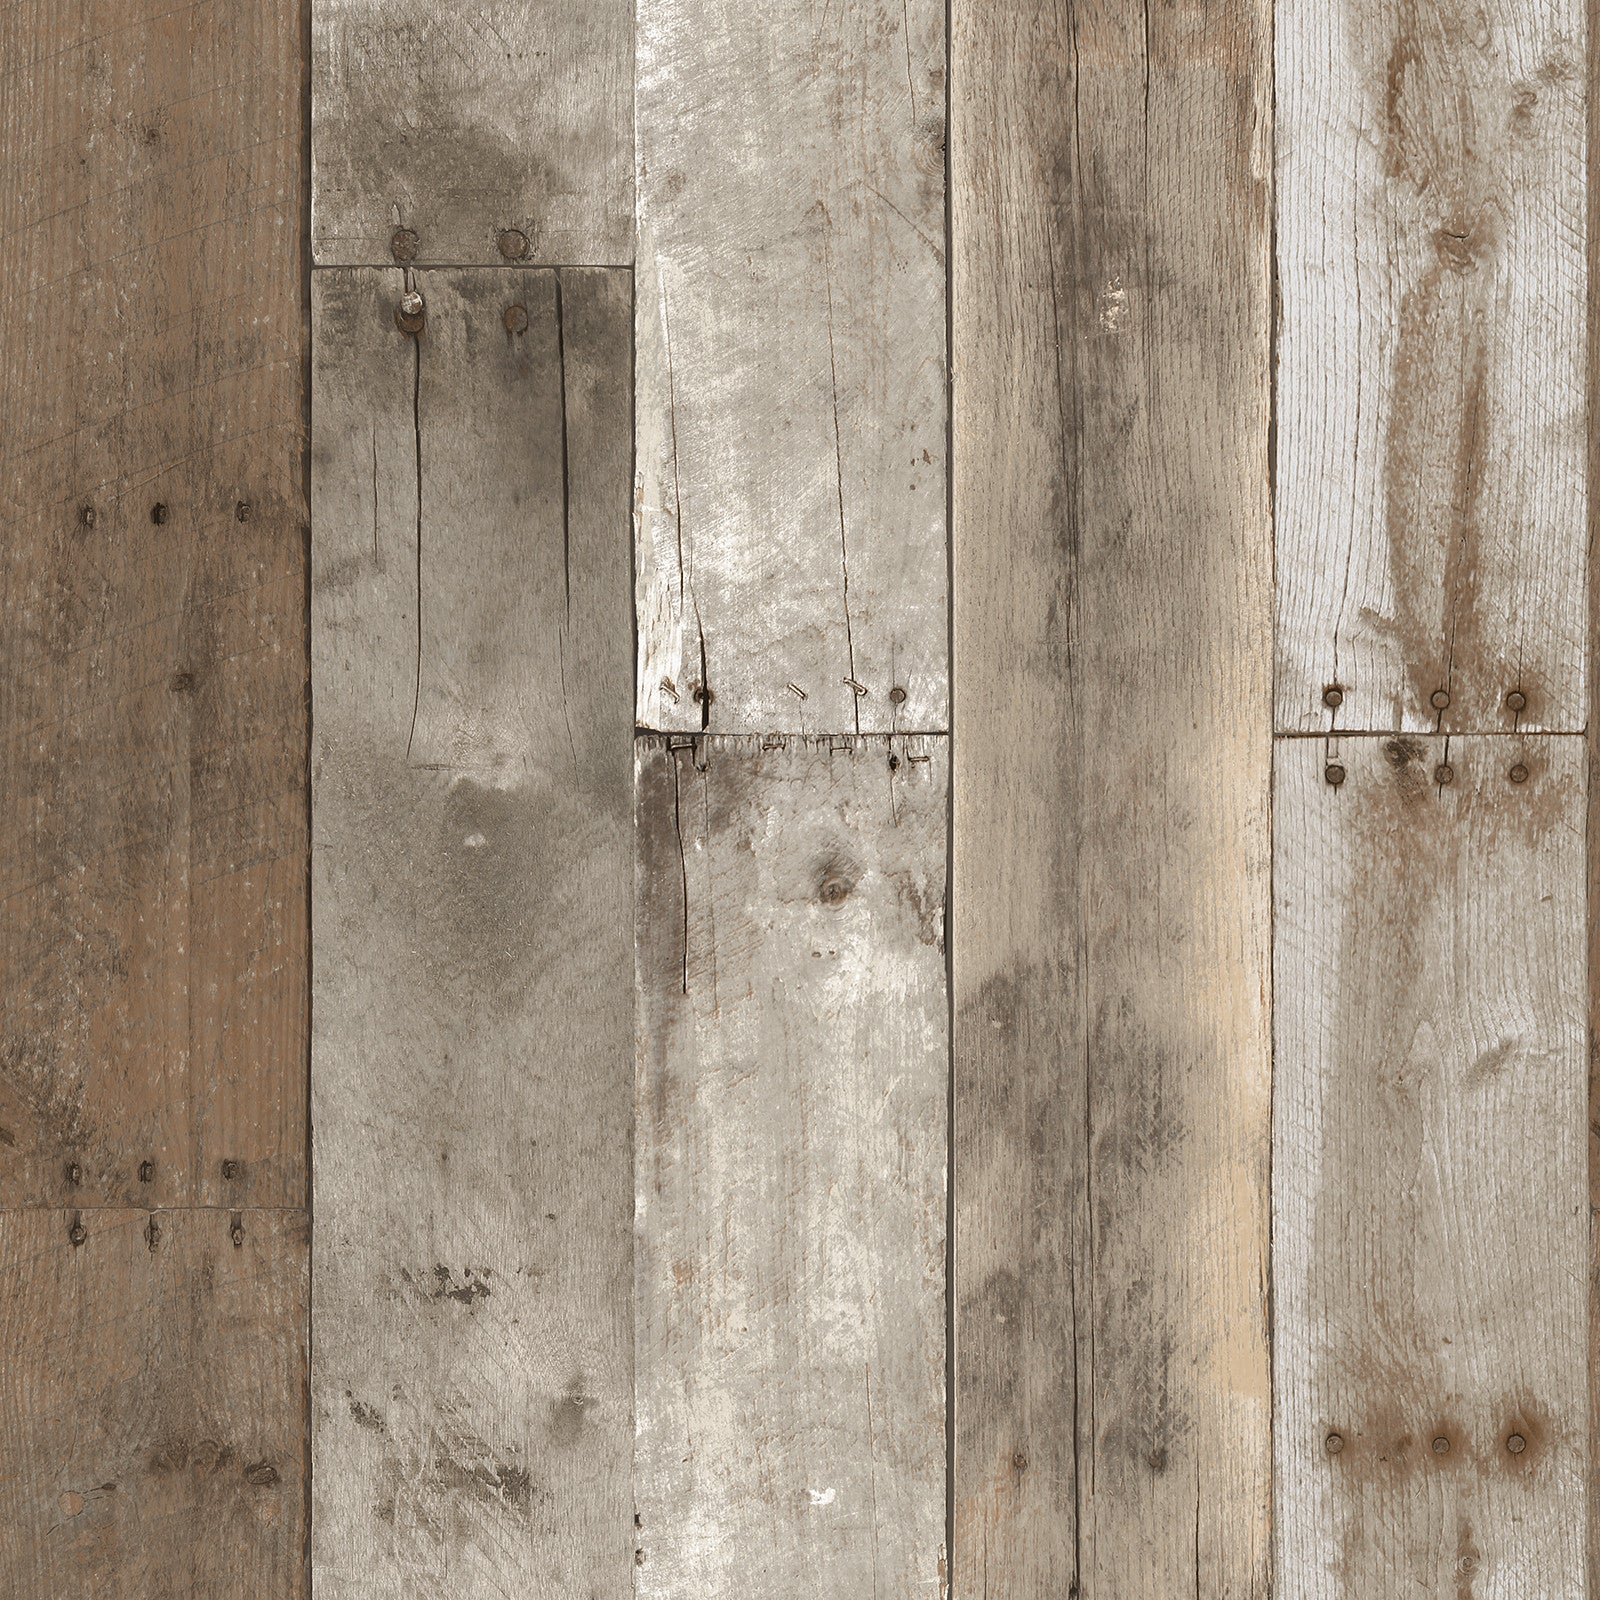 Repurposed Wood Weathered Textured Self Adhesive Wallpaper By Images, Photos, Reviews